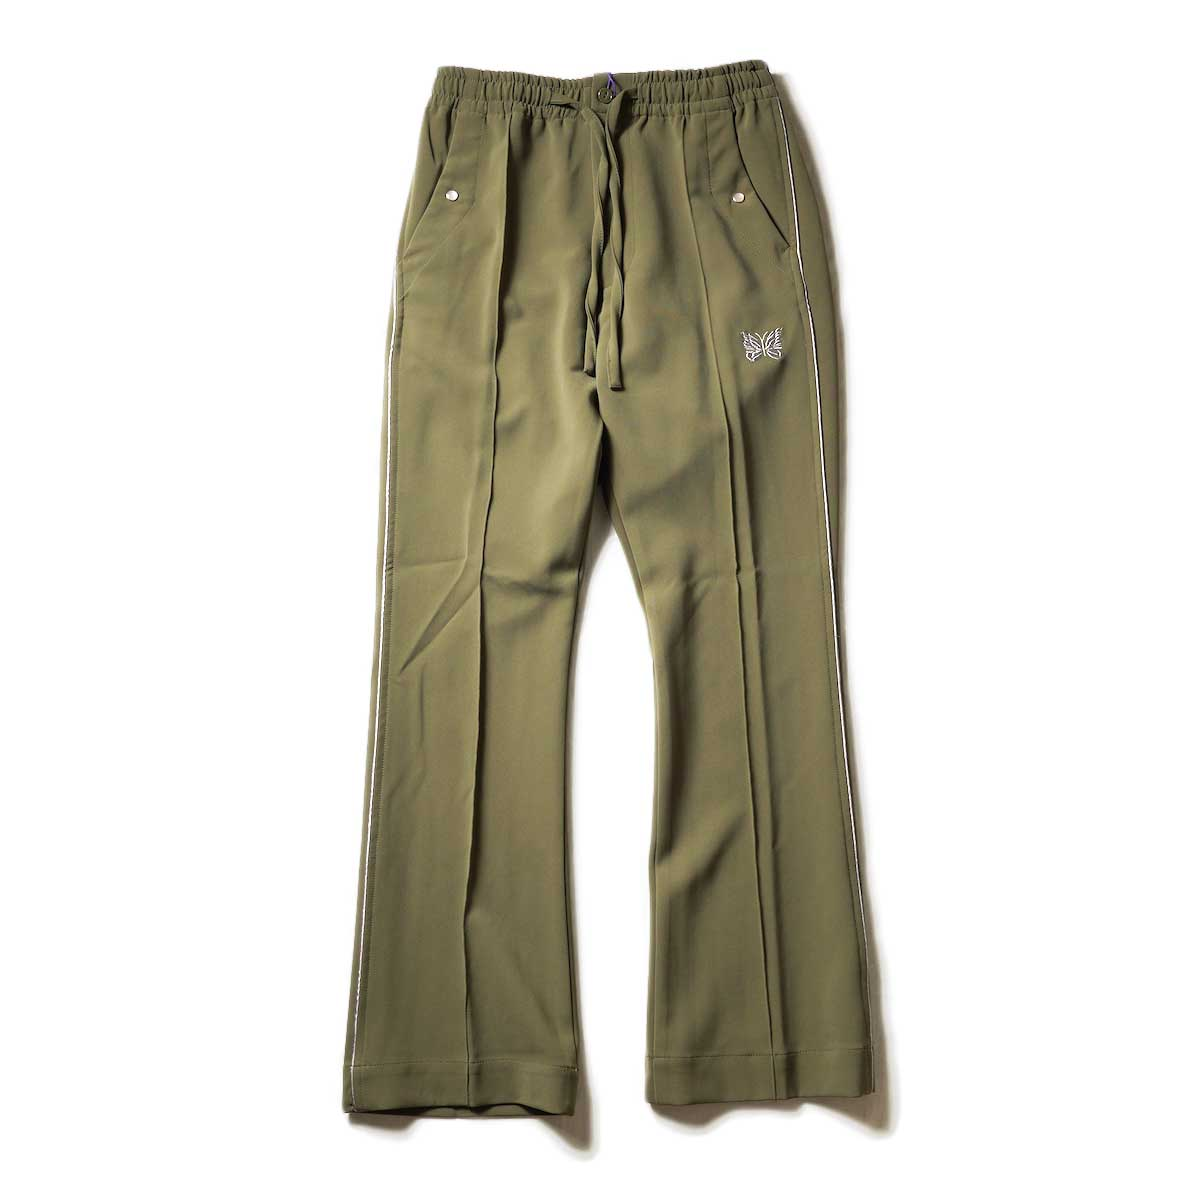 (Ladie's) Needles / Piping Cowboy Pants - Pe/Pu Double Cloth (Olive)